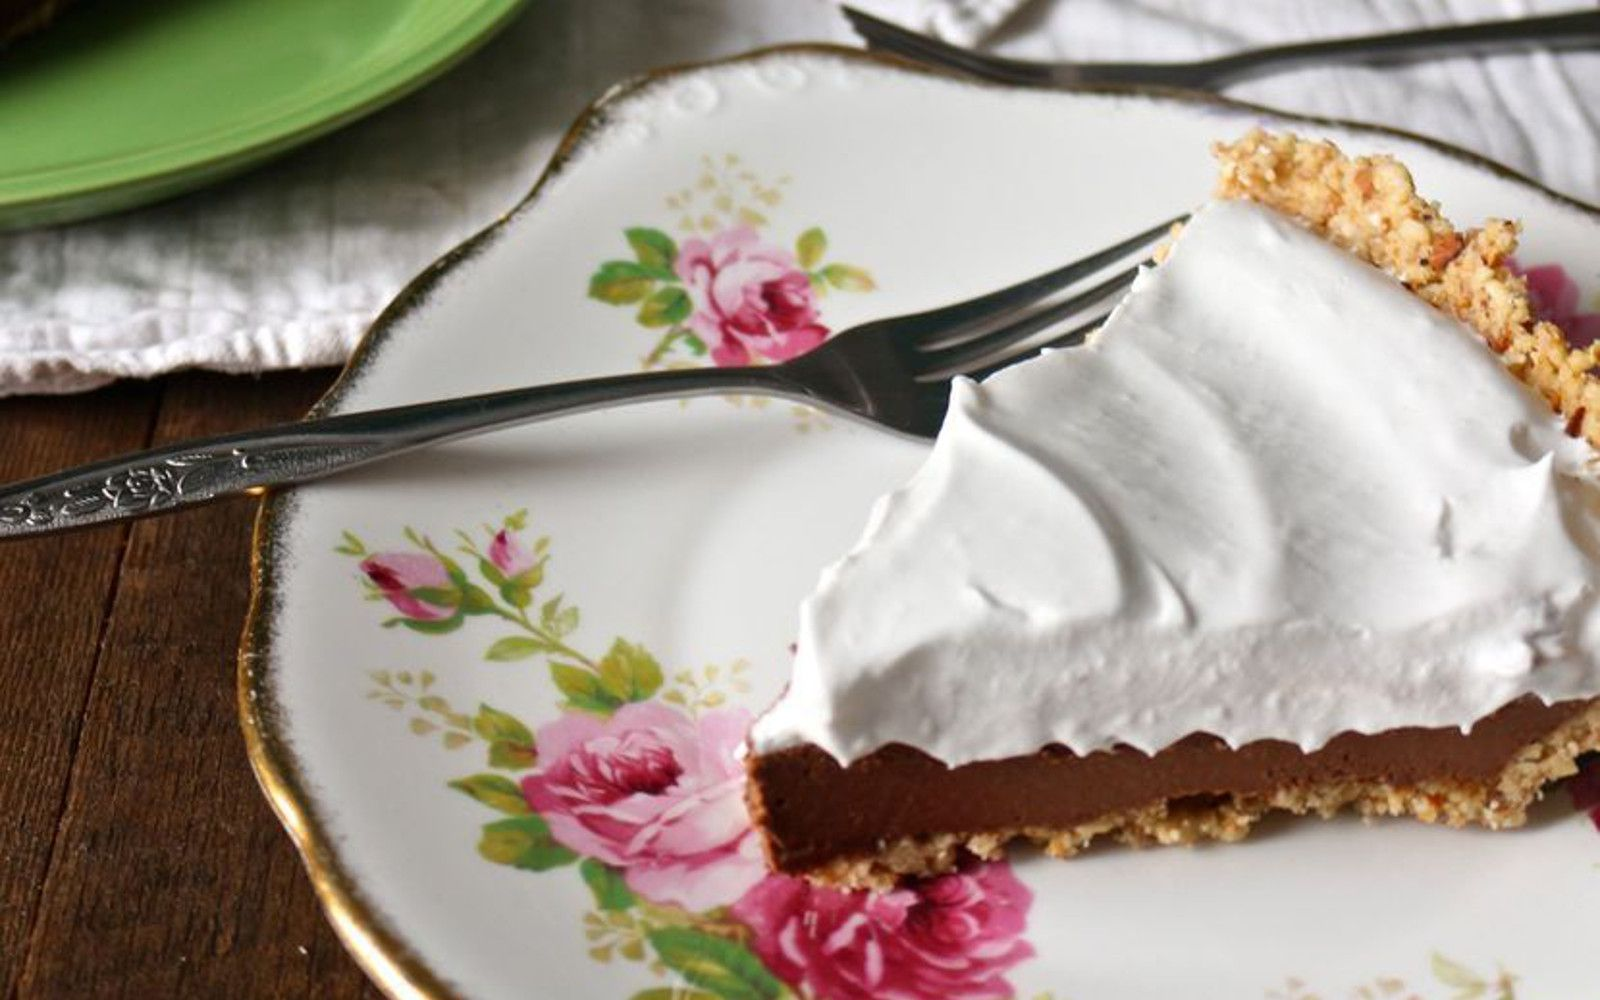 A hazelnut-almond shortbread crust layered with decadent chocolate filling and topped with airy whipped coconut cream.